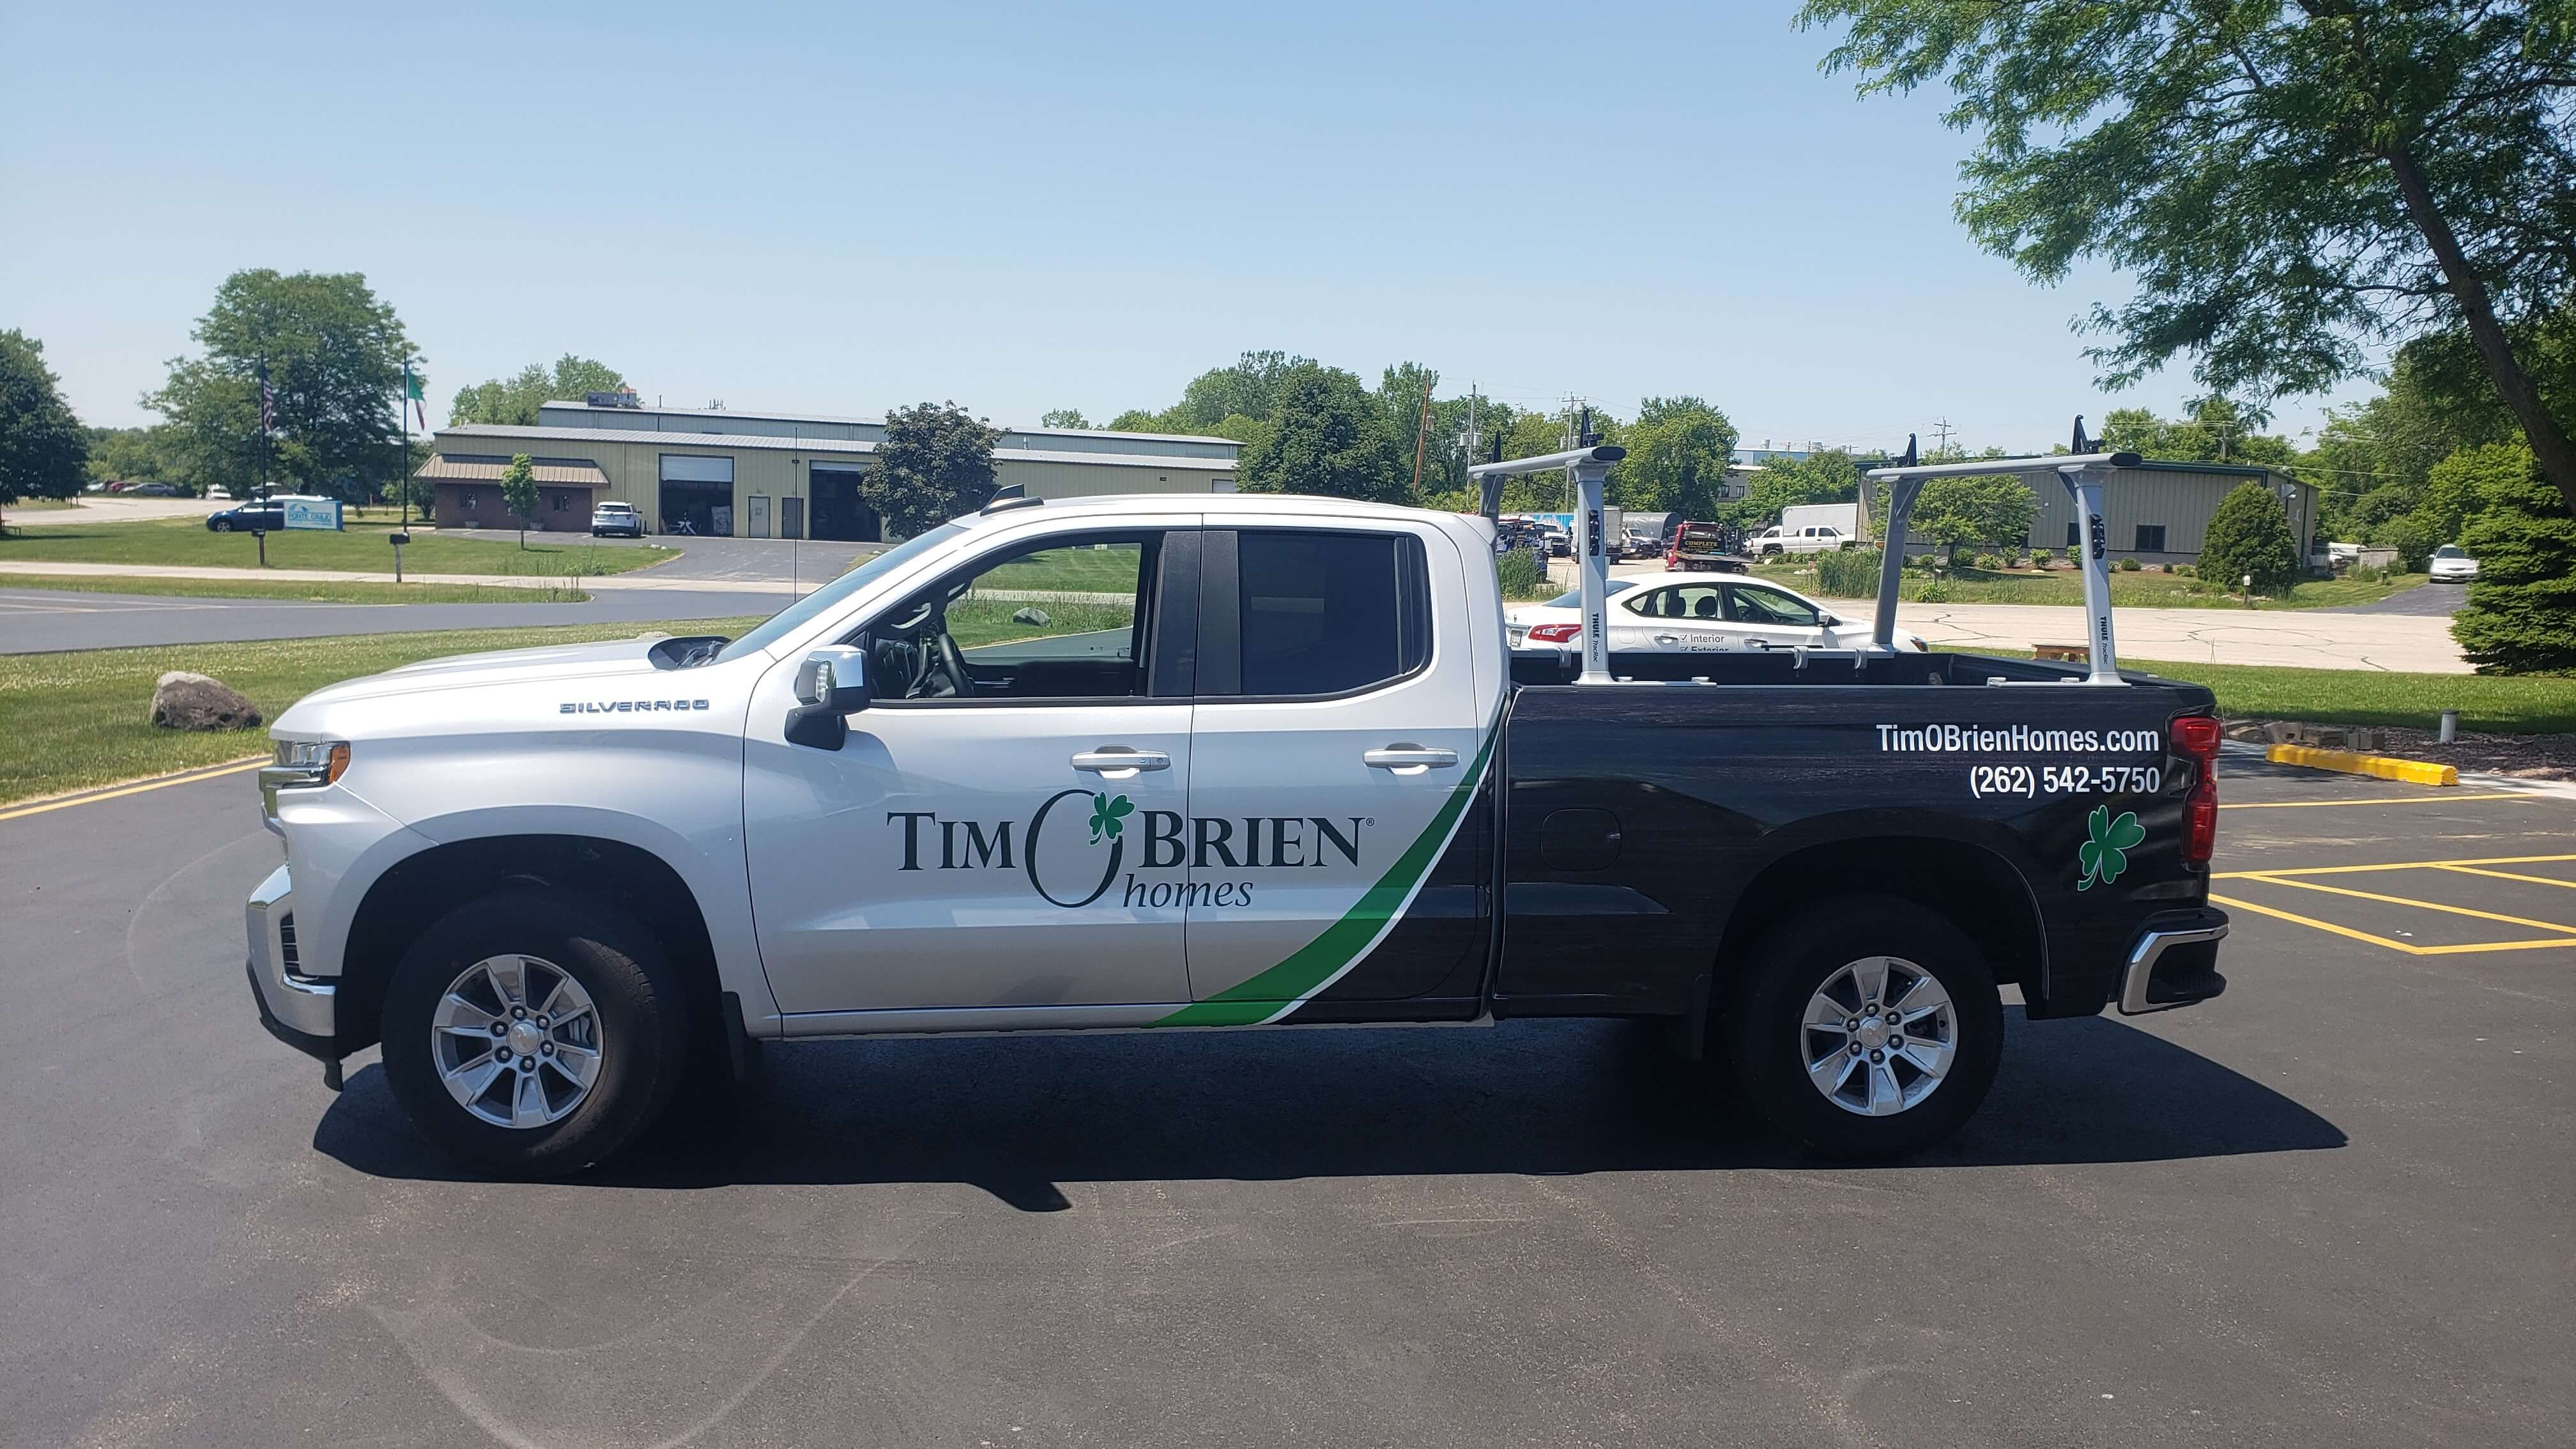 Tim O Brien Homes Partial graphics on the doors and rear of a Ford-F150